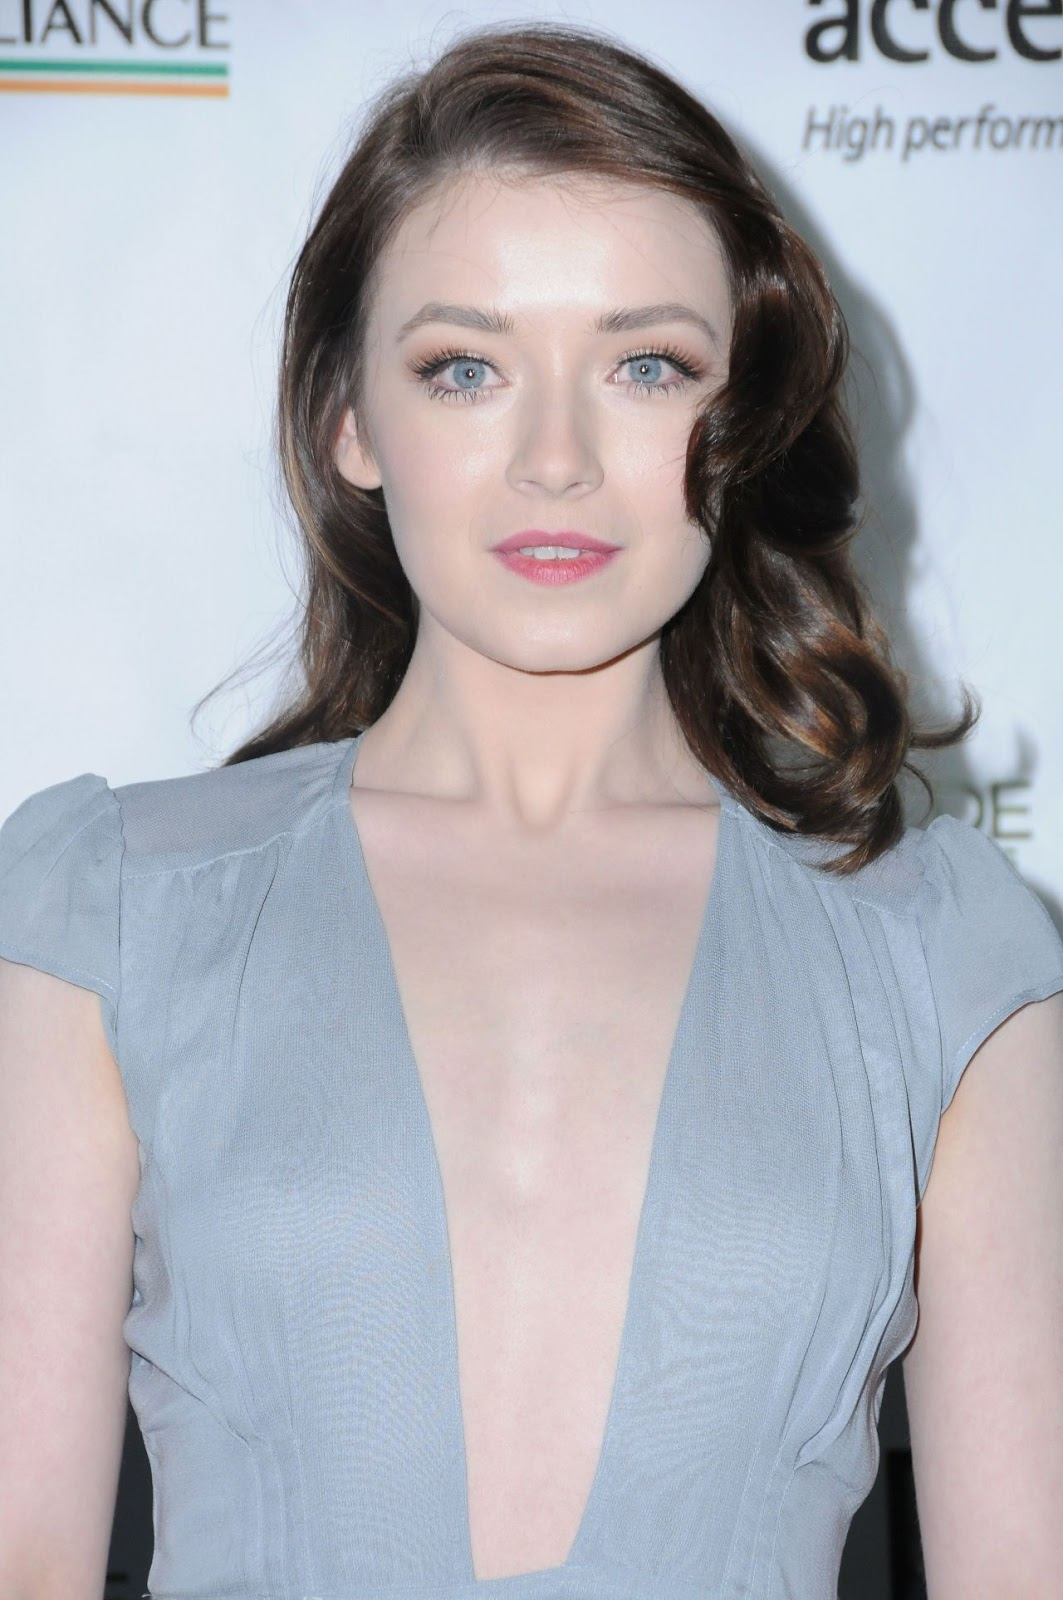 Sarah Bolger nudes (66 foto and video), Pussy, Paparazzi, Boobs, underwear 2020